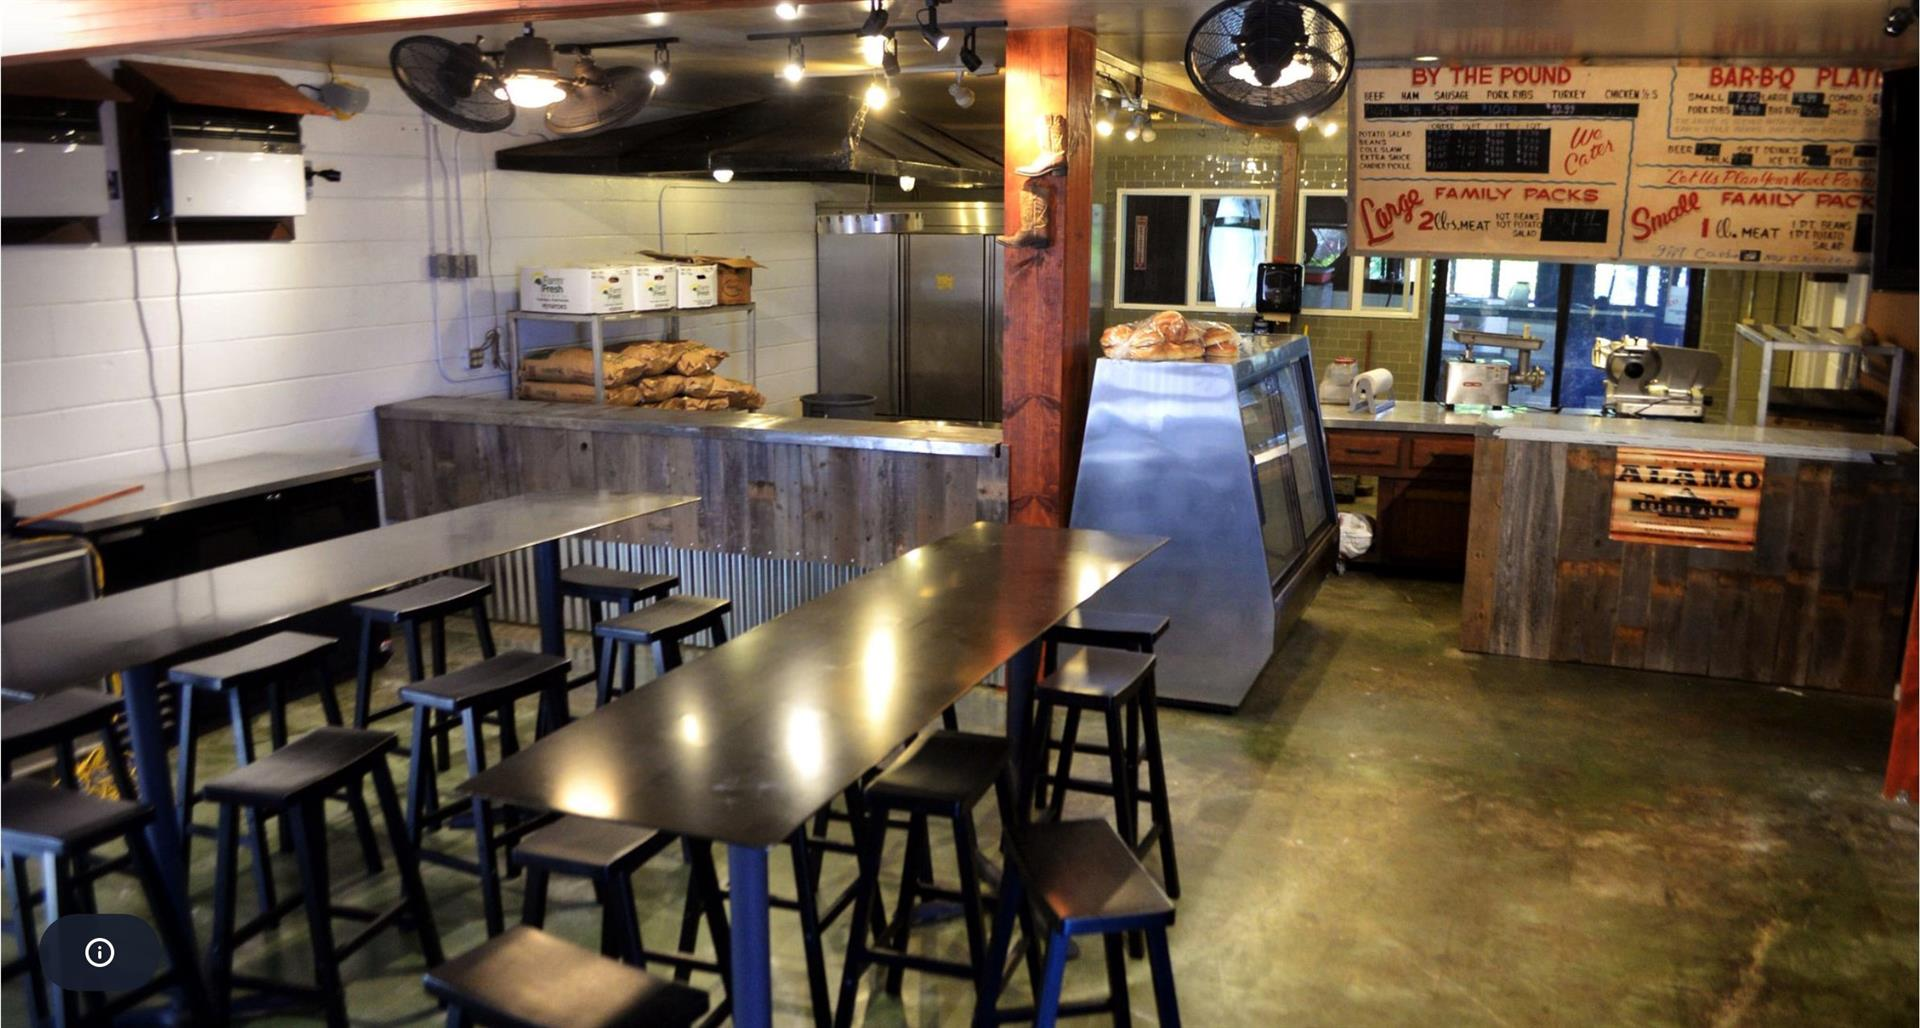 The dining area of the inside BBQ Pit, which includes, high top tables and stools